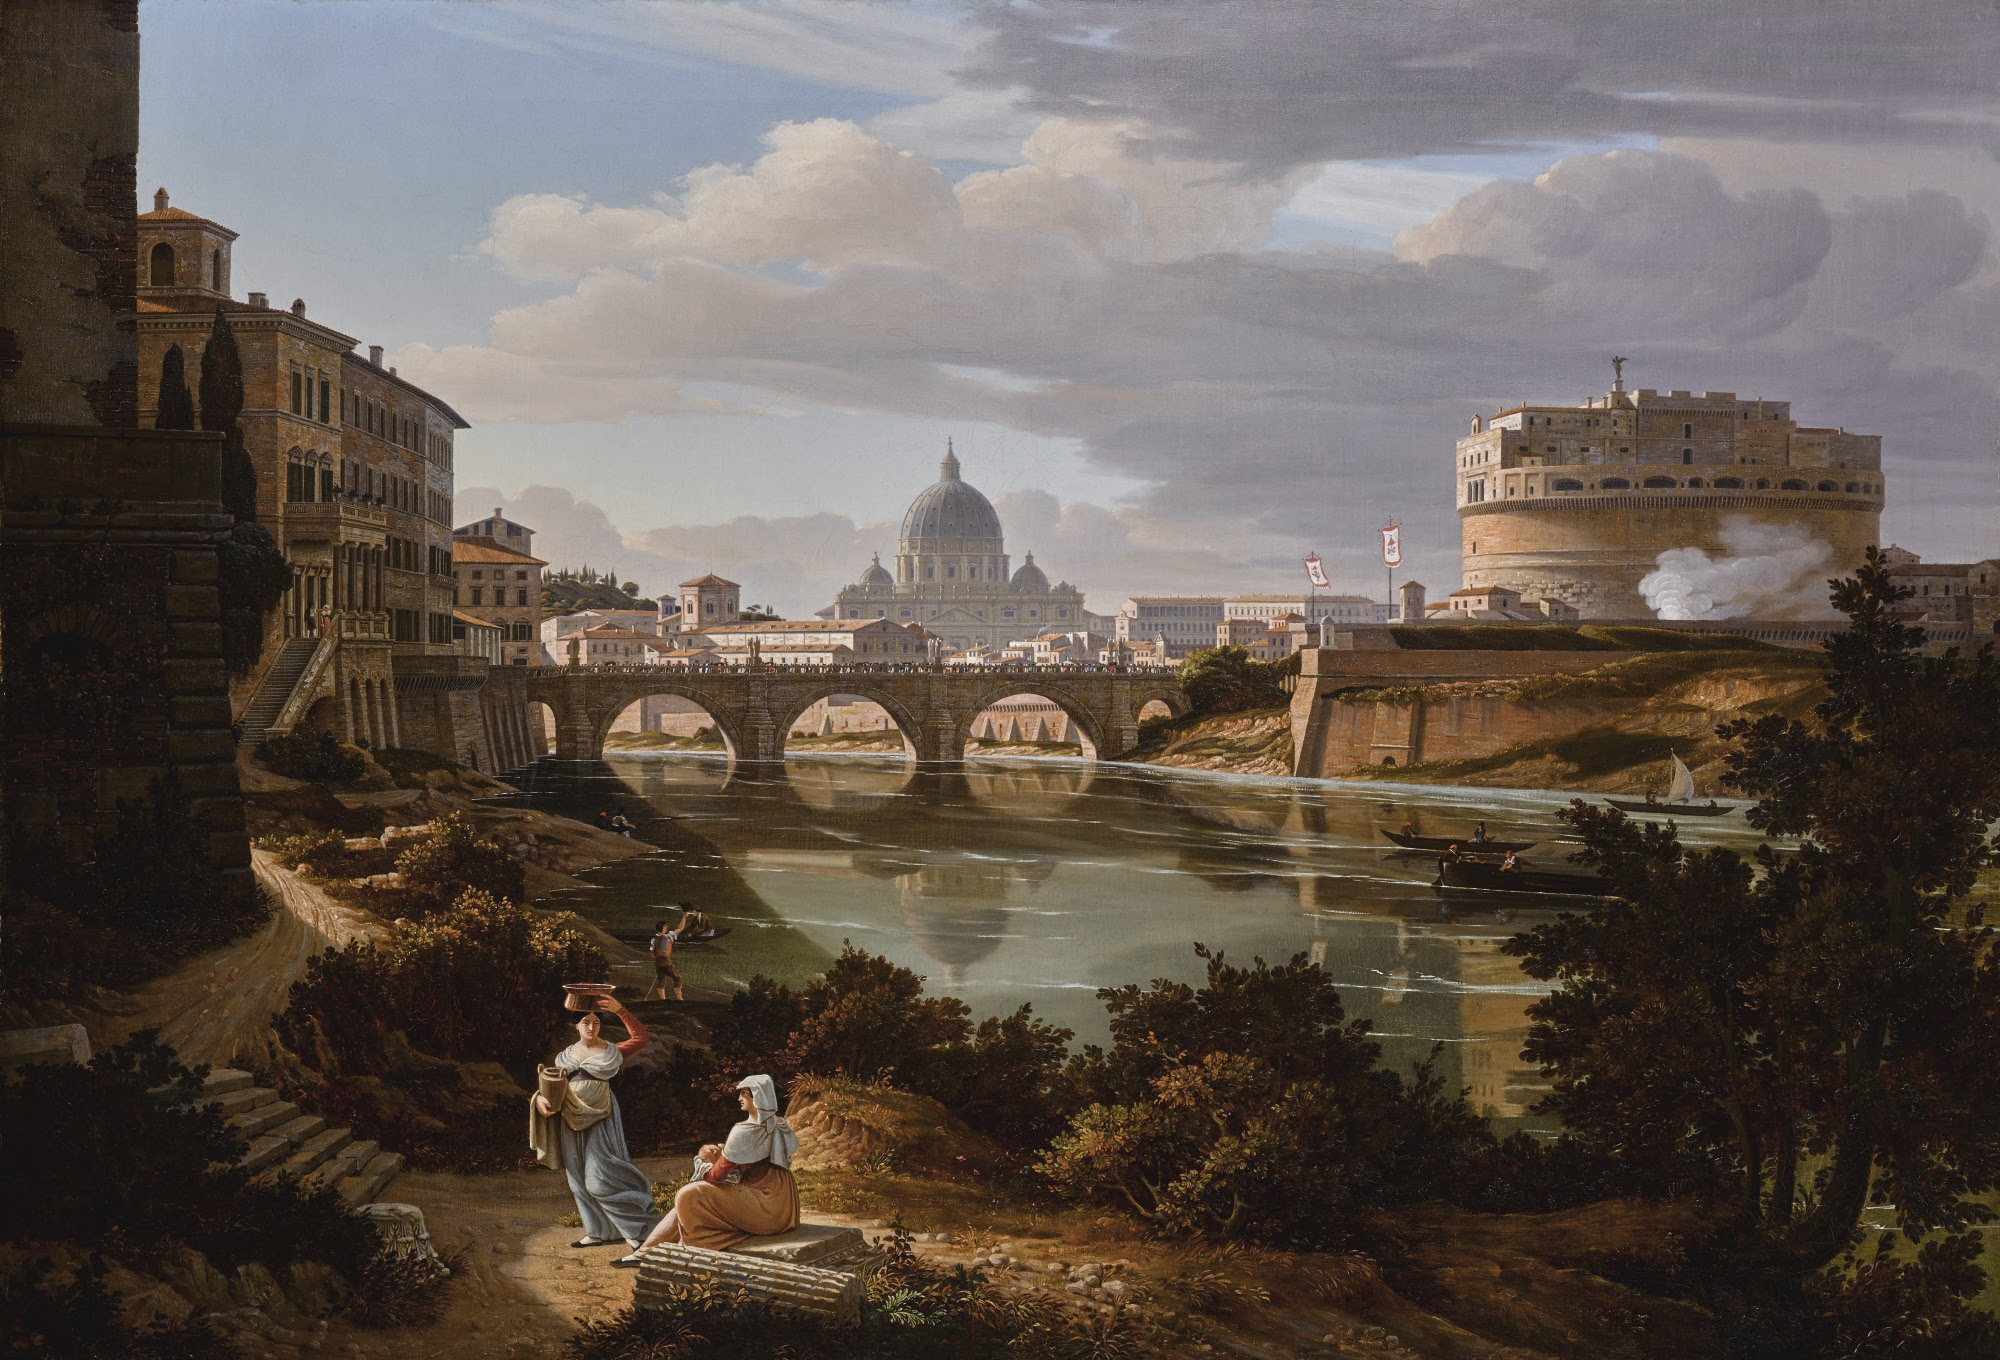 File:Rome, a view of the river Tiber looking south with the Castel Sant'Angelo and Saint Peter's Basilica beyond by Rudolf Wiegmann 1834.jpg